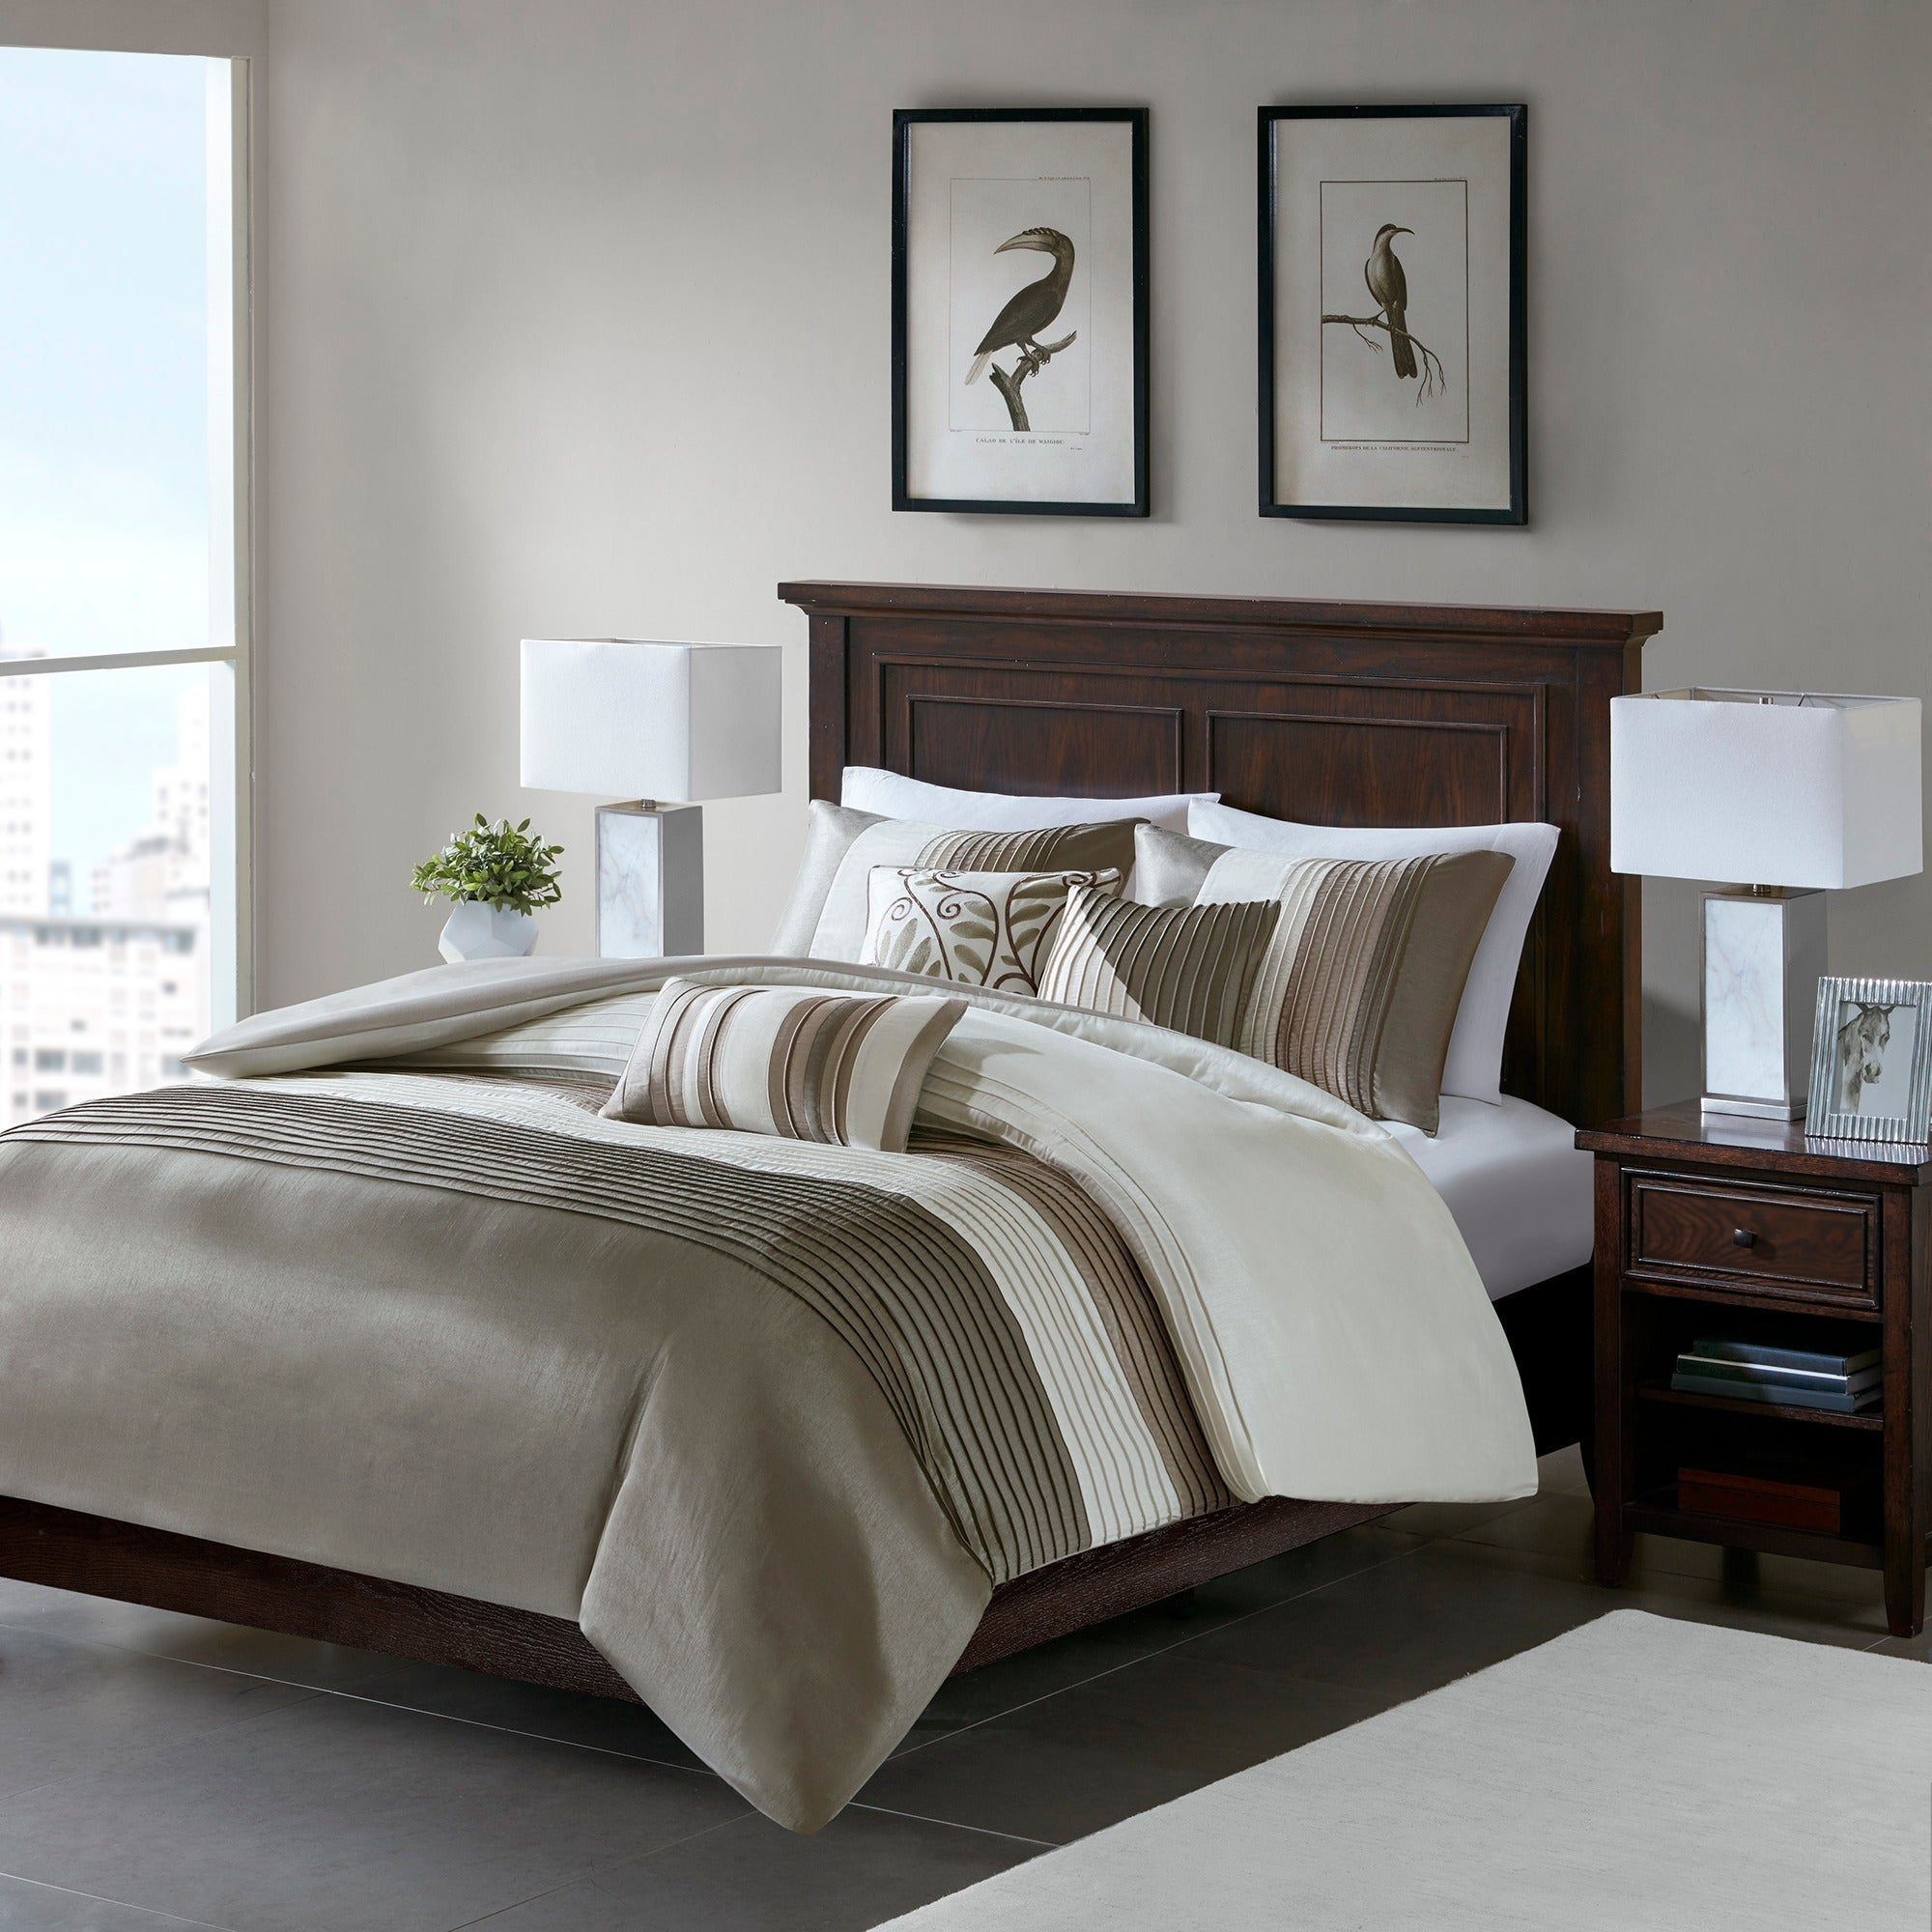 today duvet set sateen bath piece bedding park grey product madison cover printed shipping overstock free cotton karyna